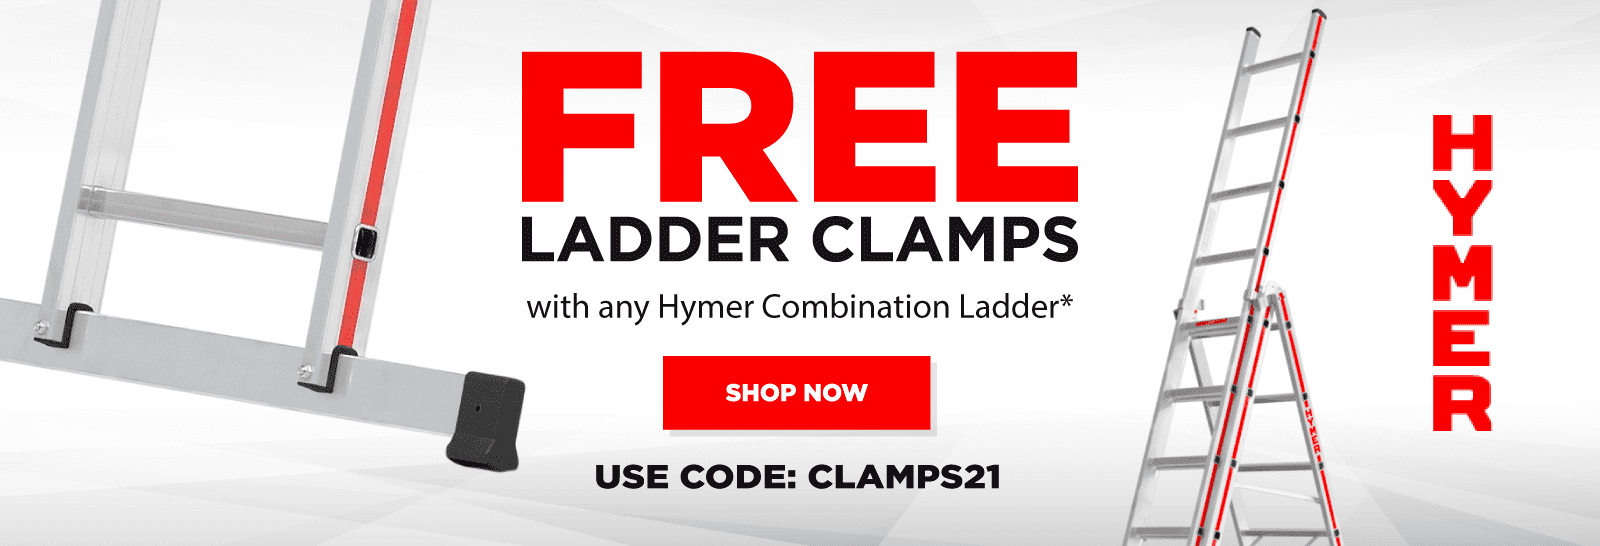 Free Ladder Clamps